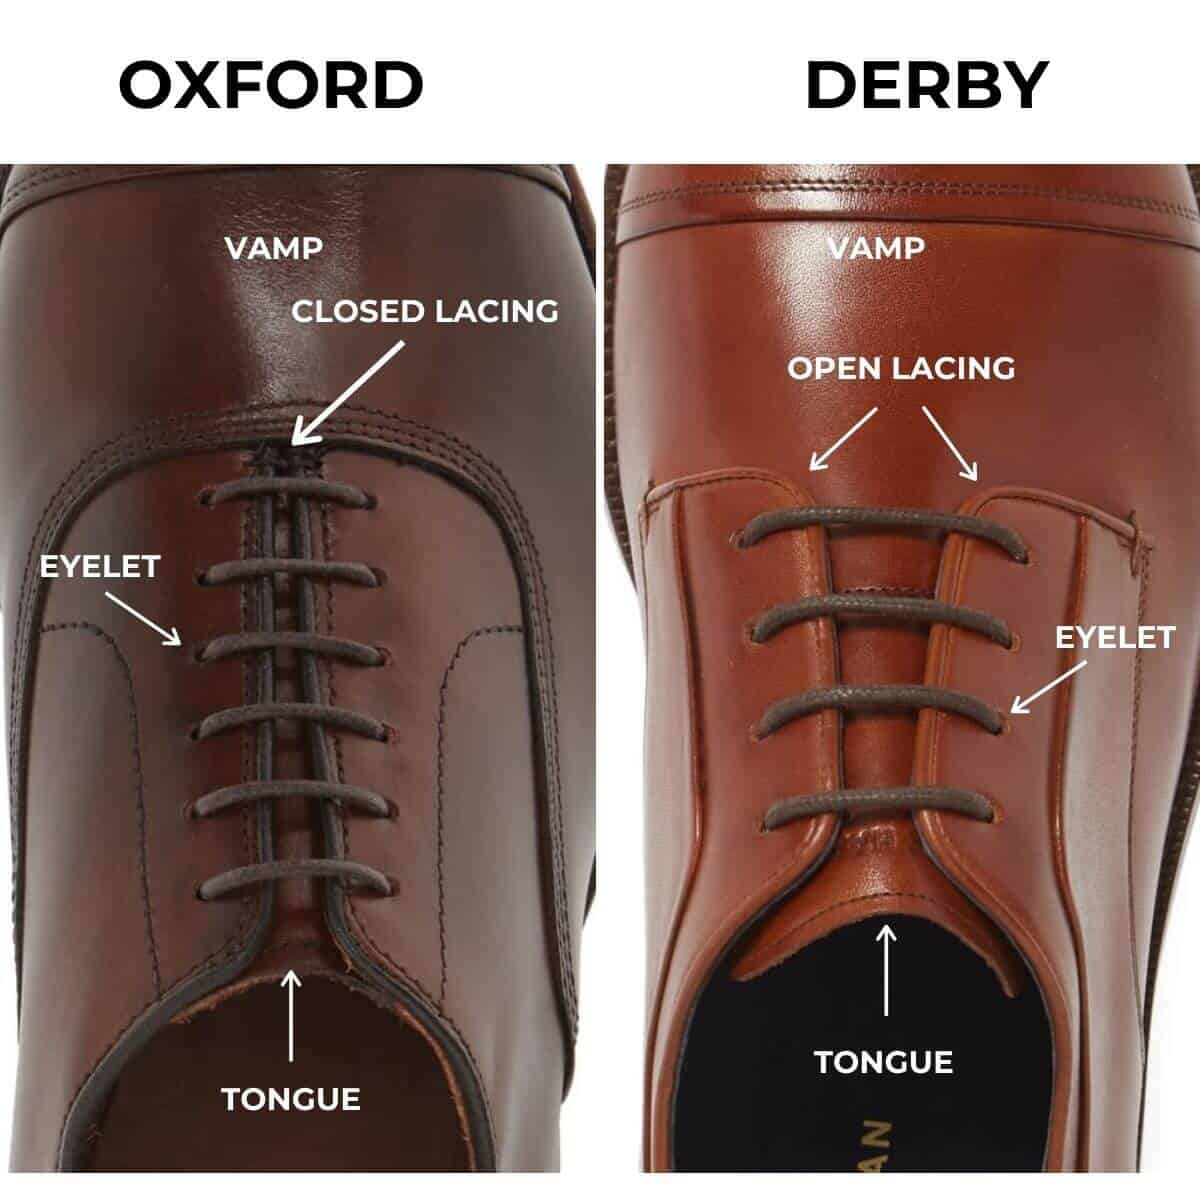 Comparison between the Oxford and the Derby shoe.